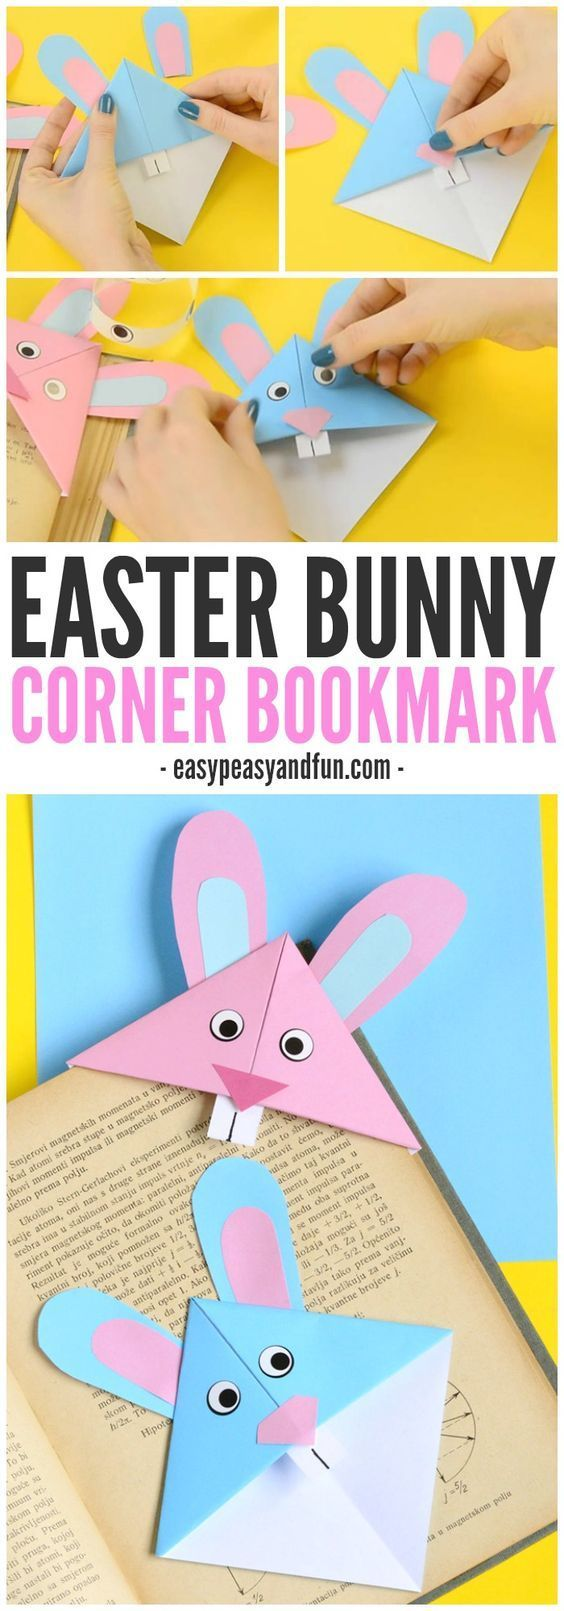 Easter Bunny Corner Bookmark!! Easy beginner origami for kids! Loads of Fun making these.